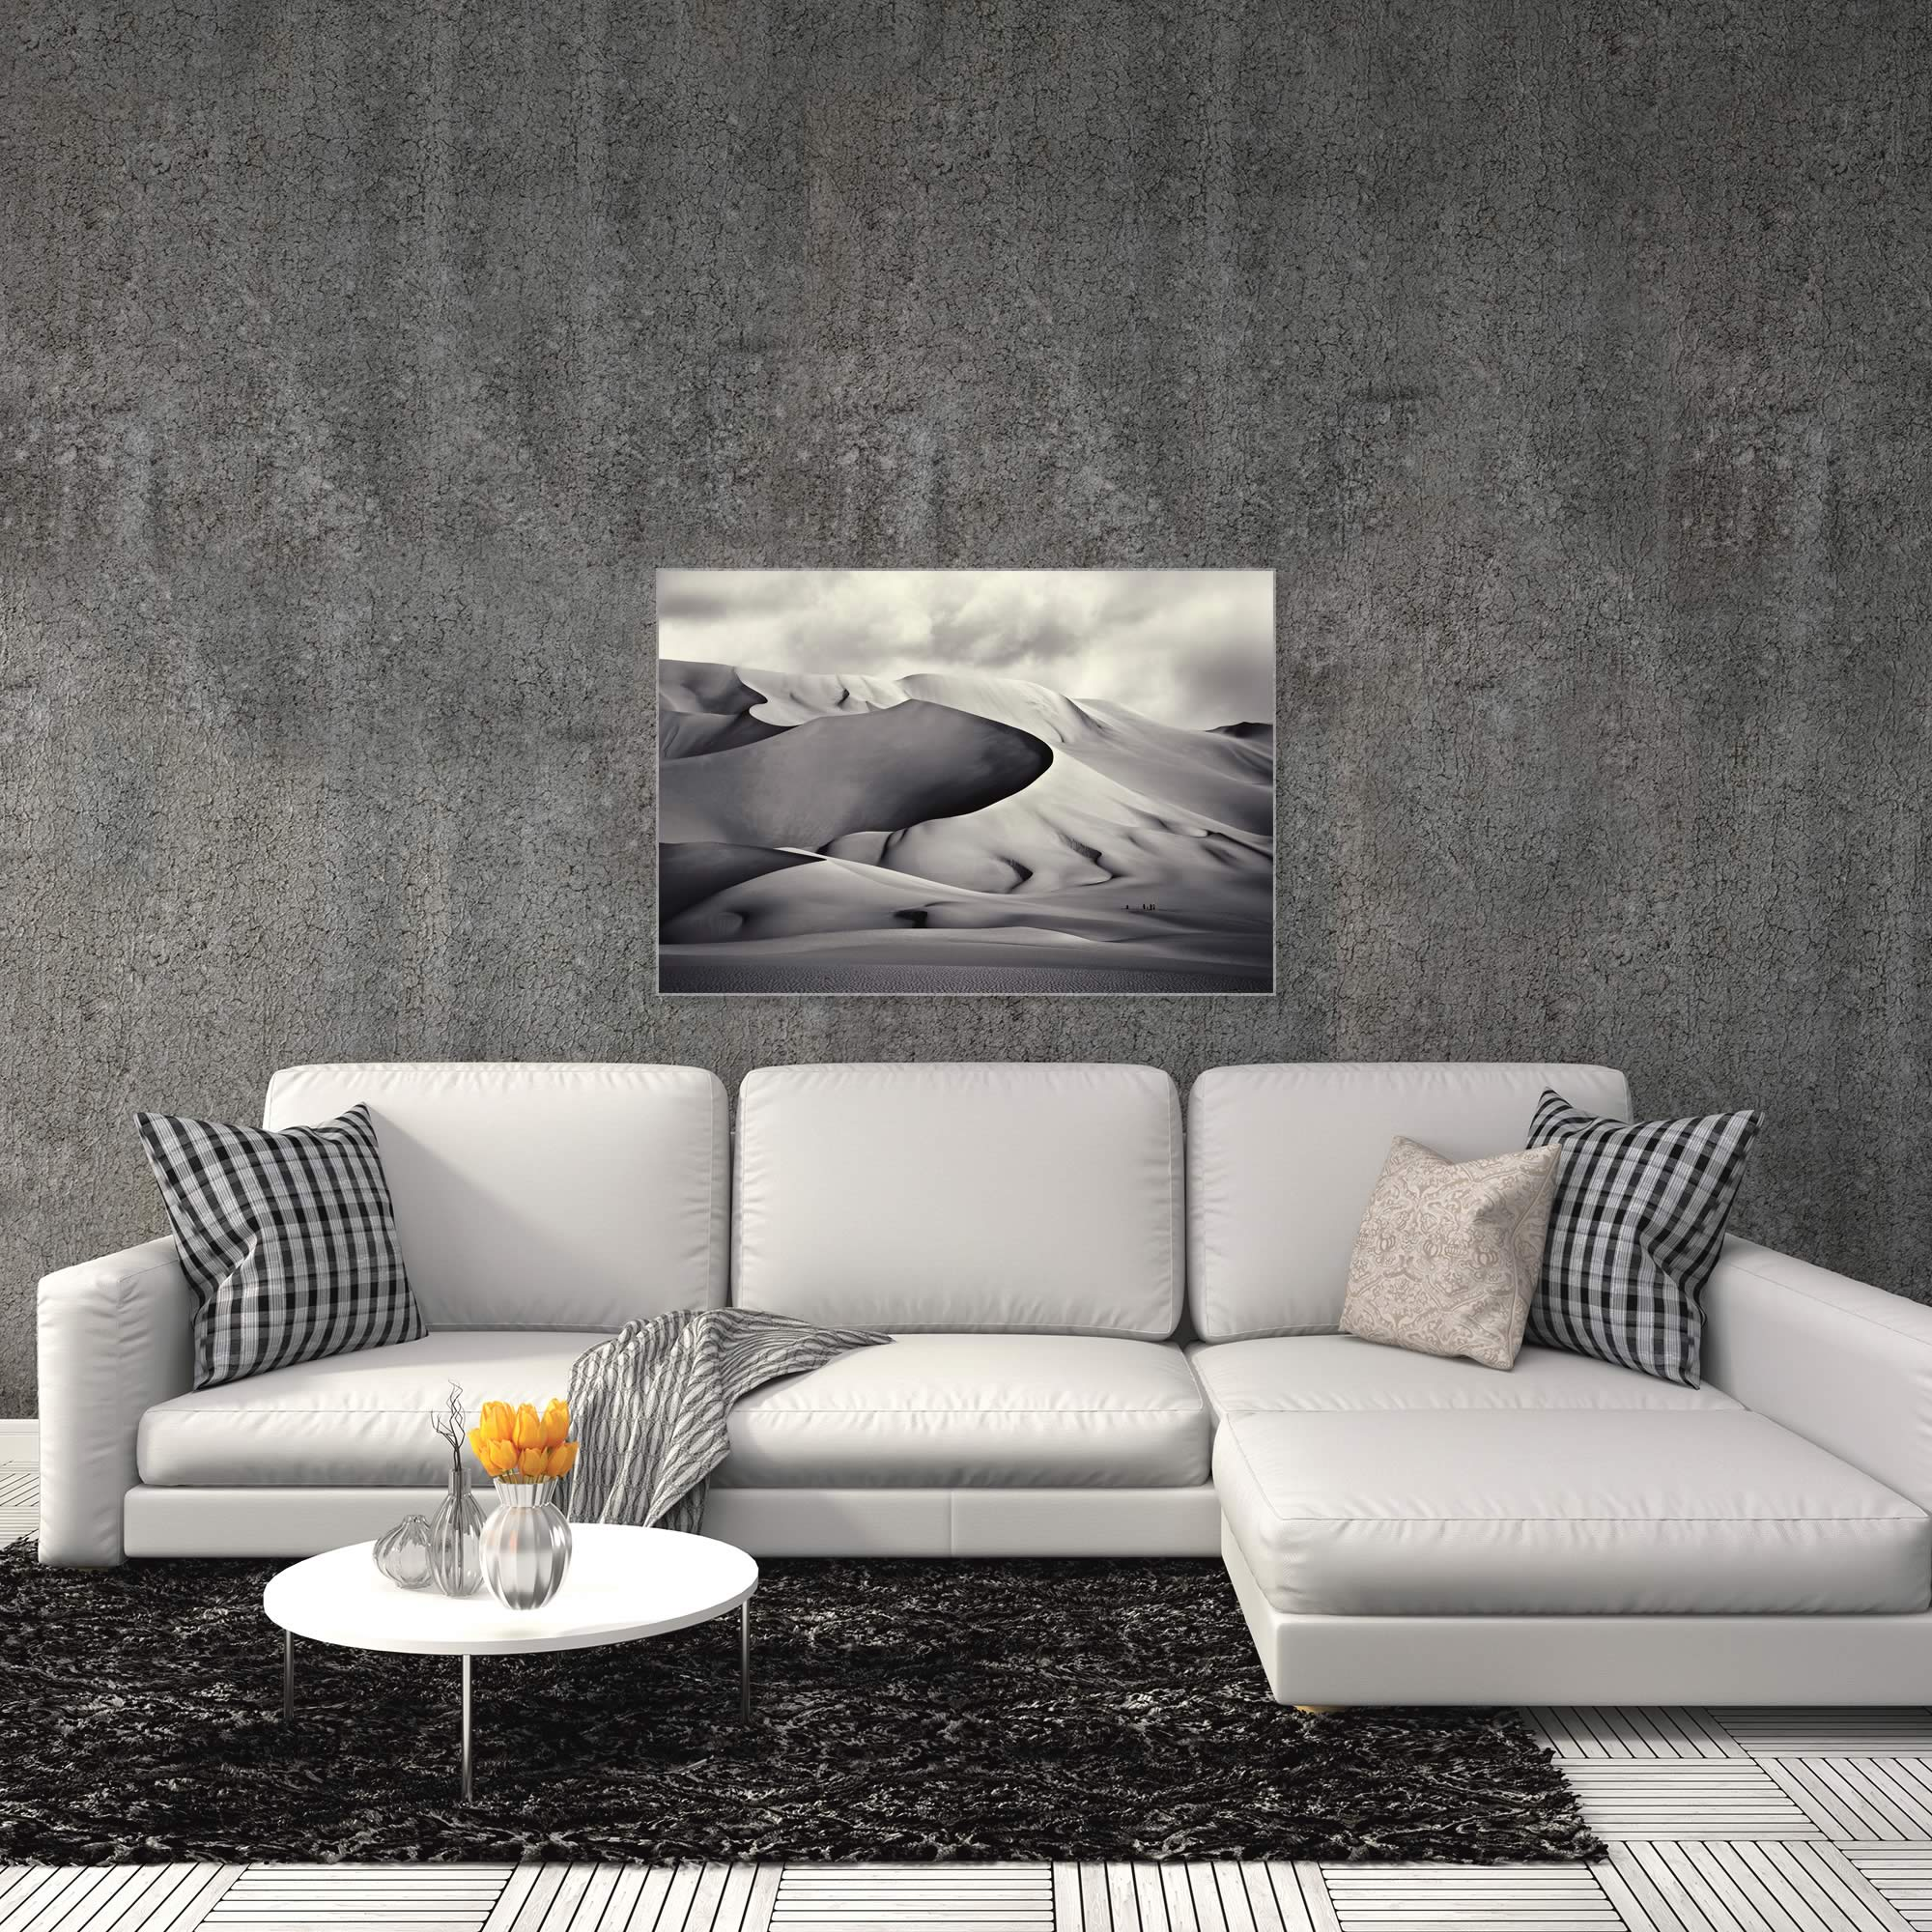 Desert Dunes by Manuel Vilches - Minimalist Photography on Metal or Acrylic - Alternate View 3